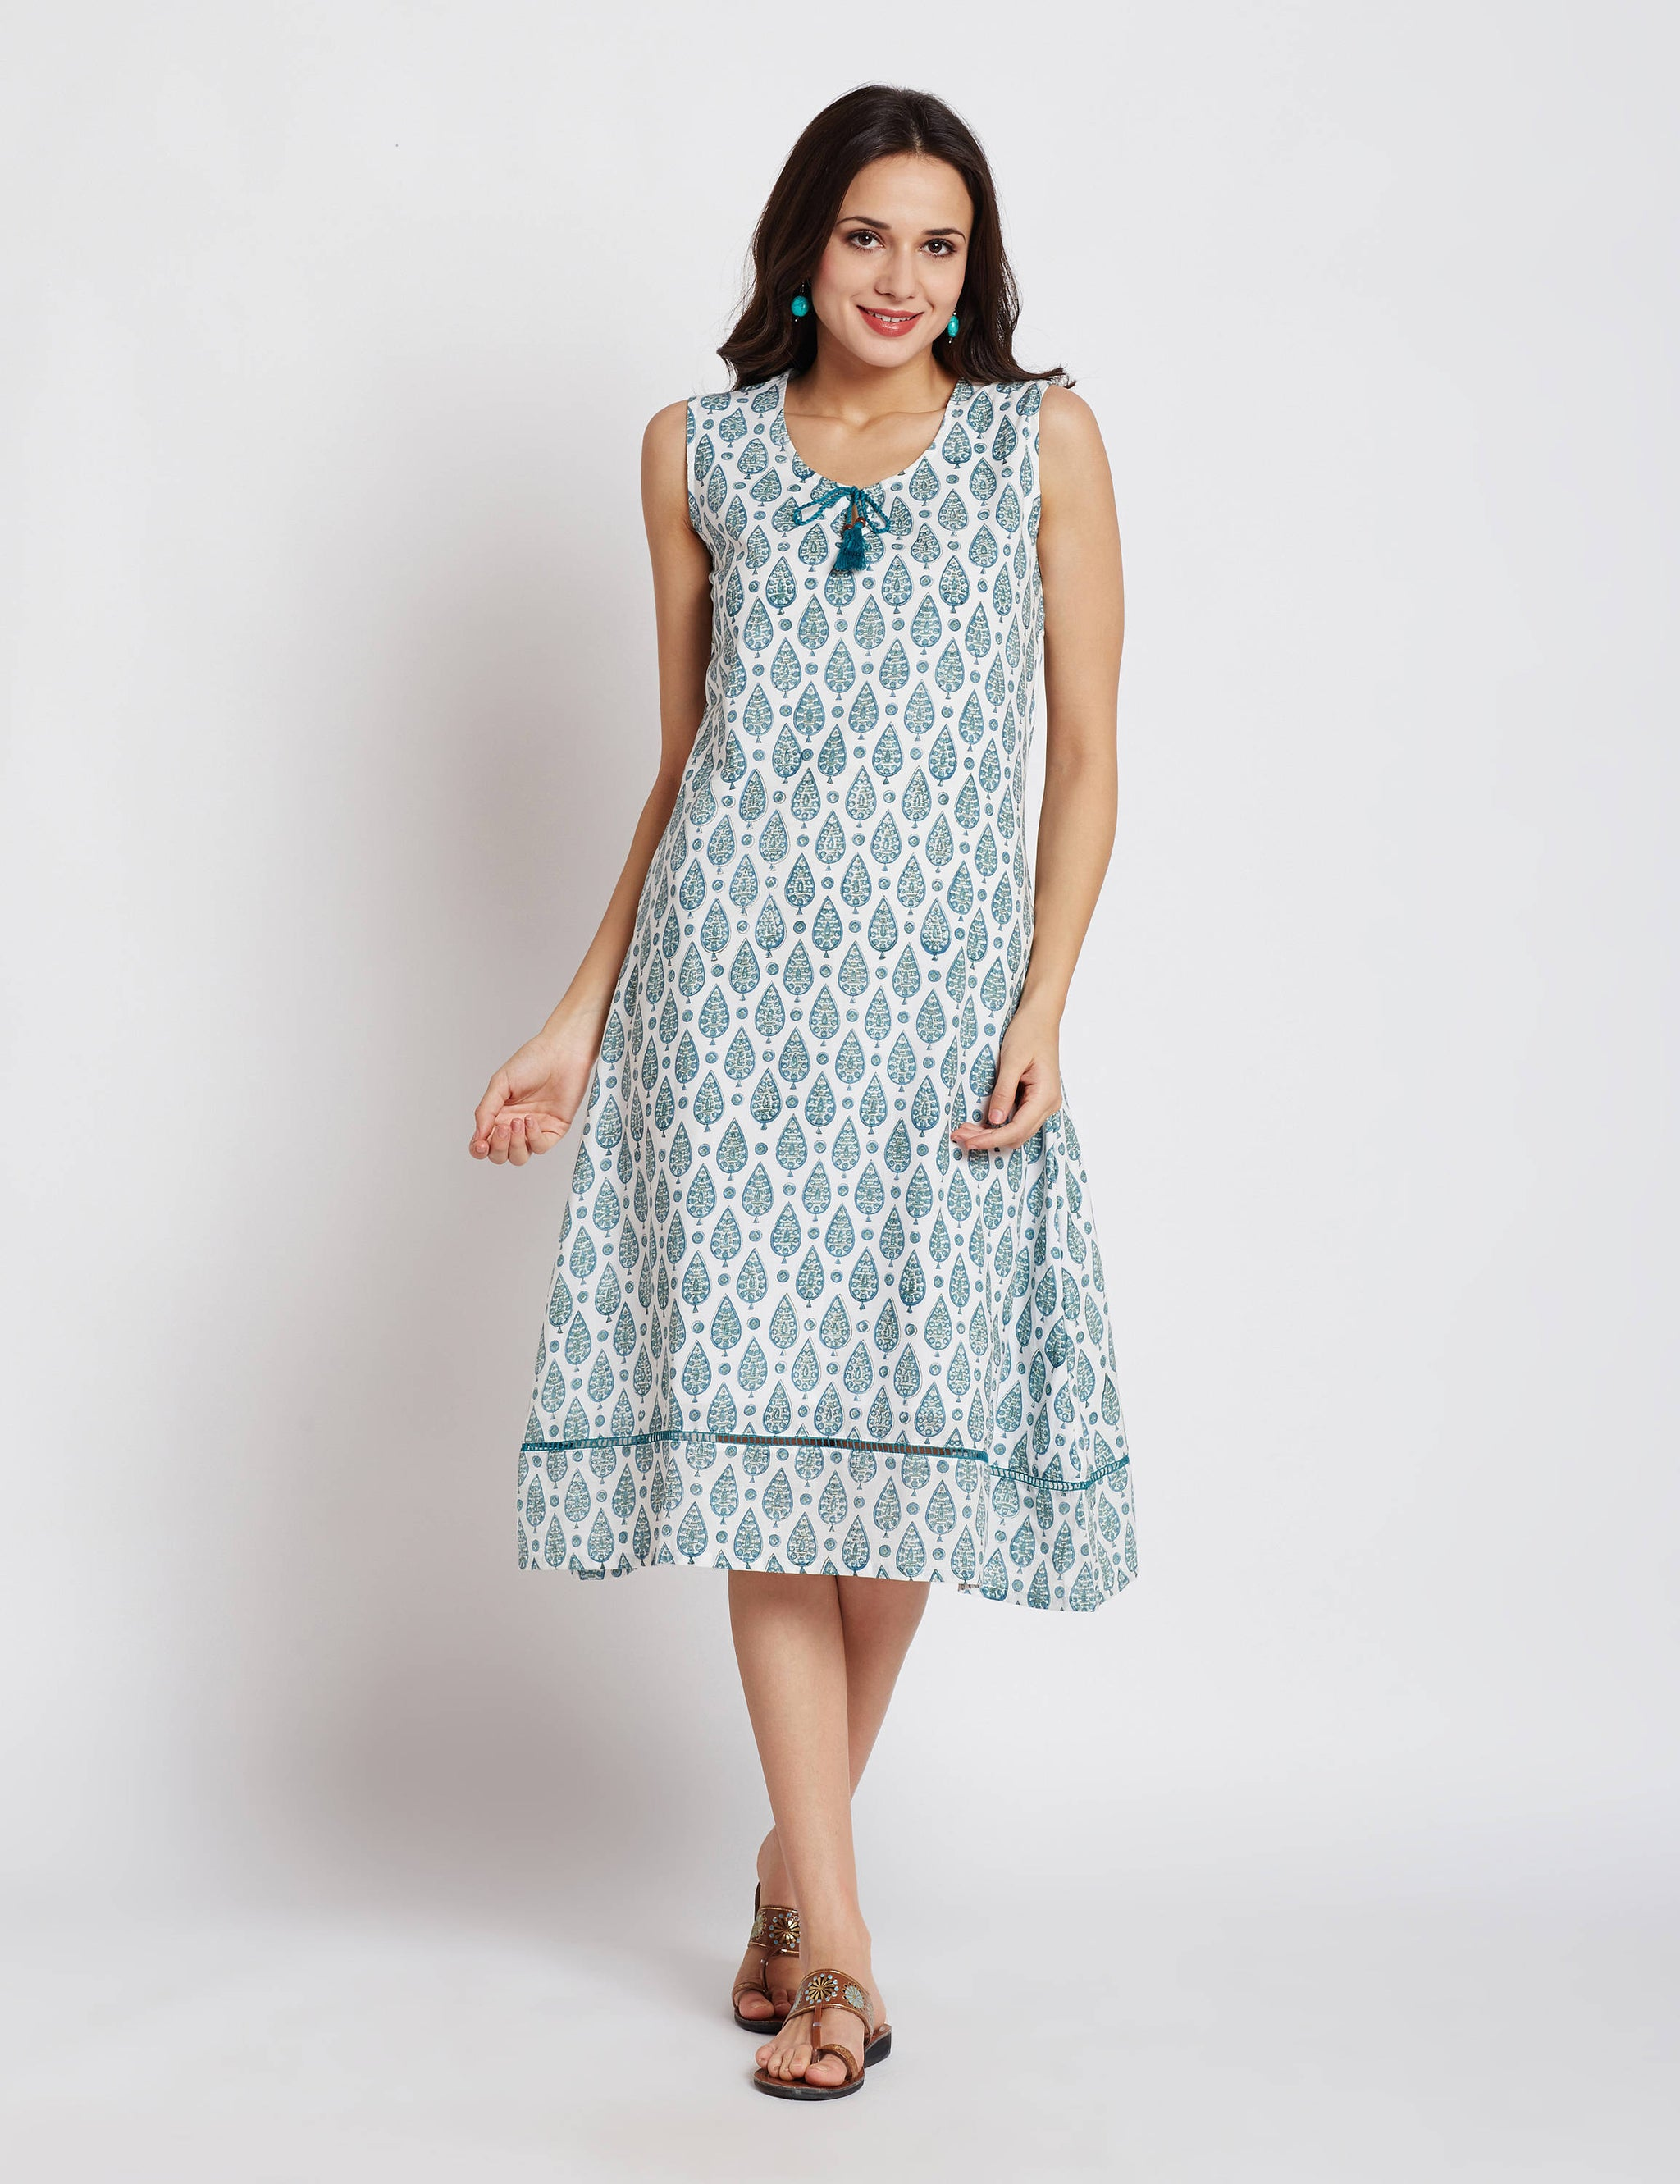 Hand block one piece sleeveless white dress with aqua green leaf print